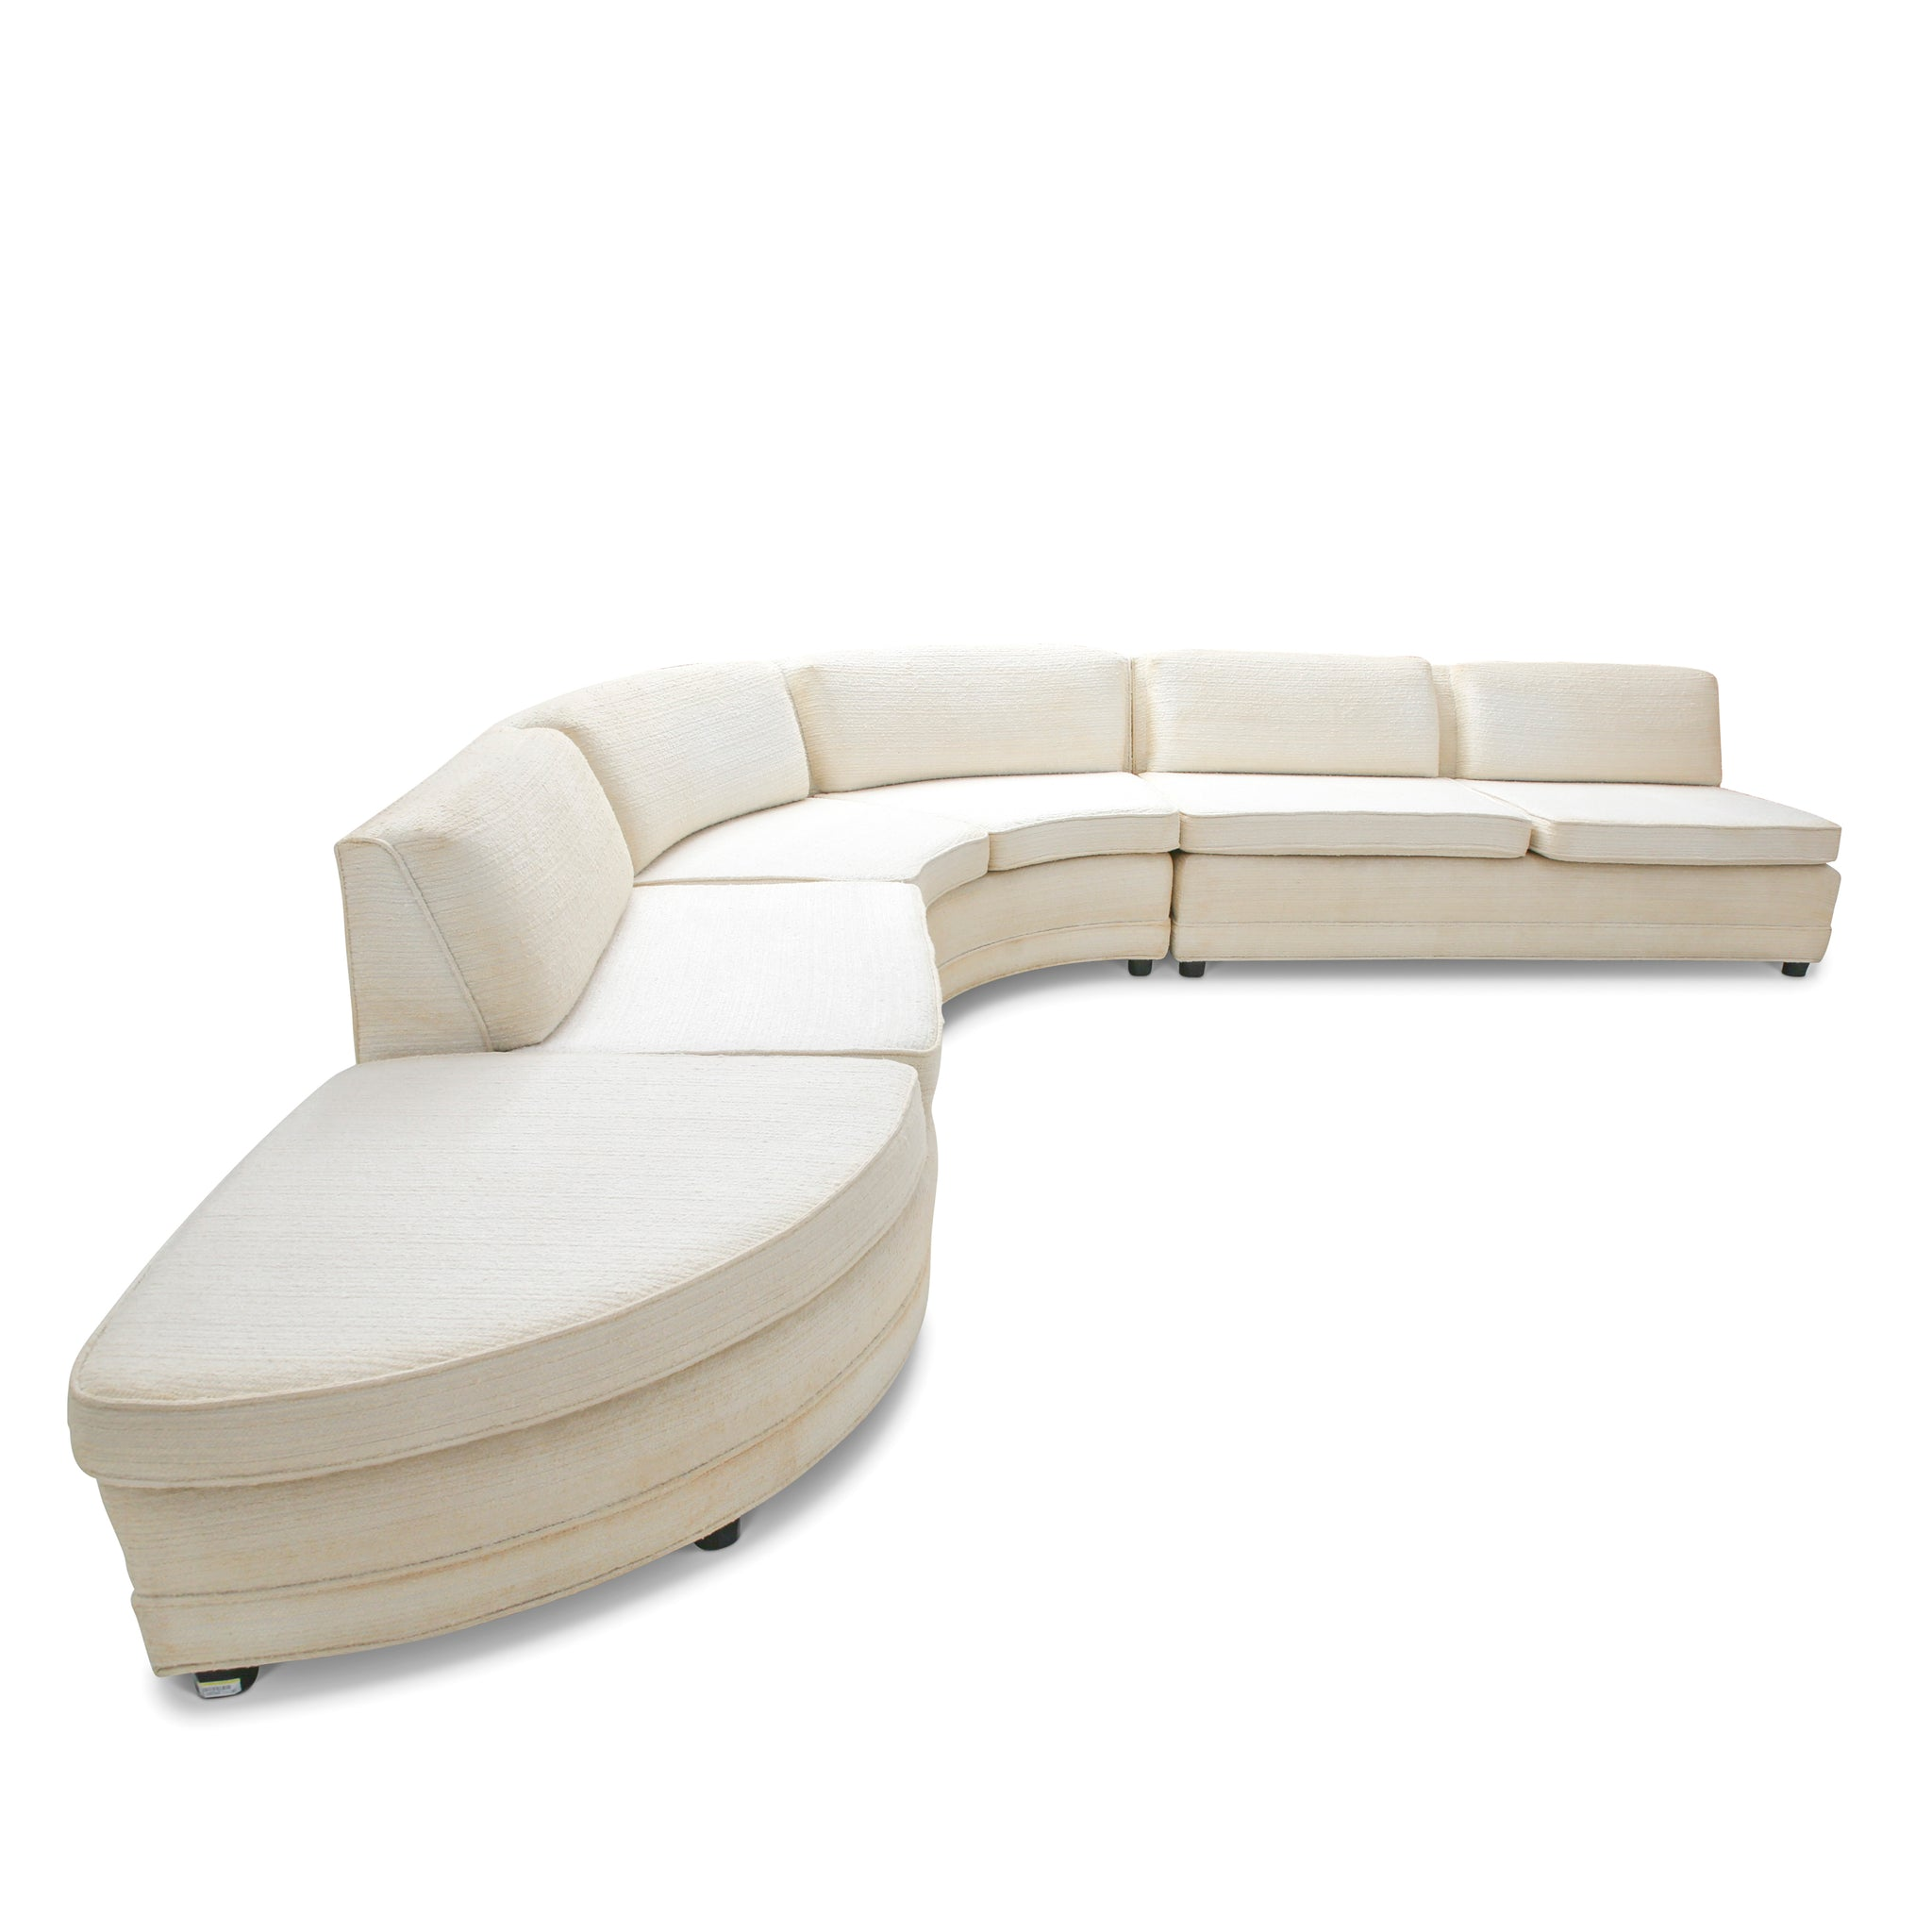 1950's Two Piece Serpentine Sectional